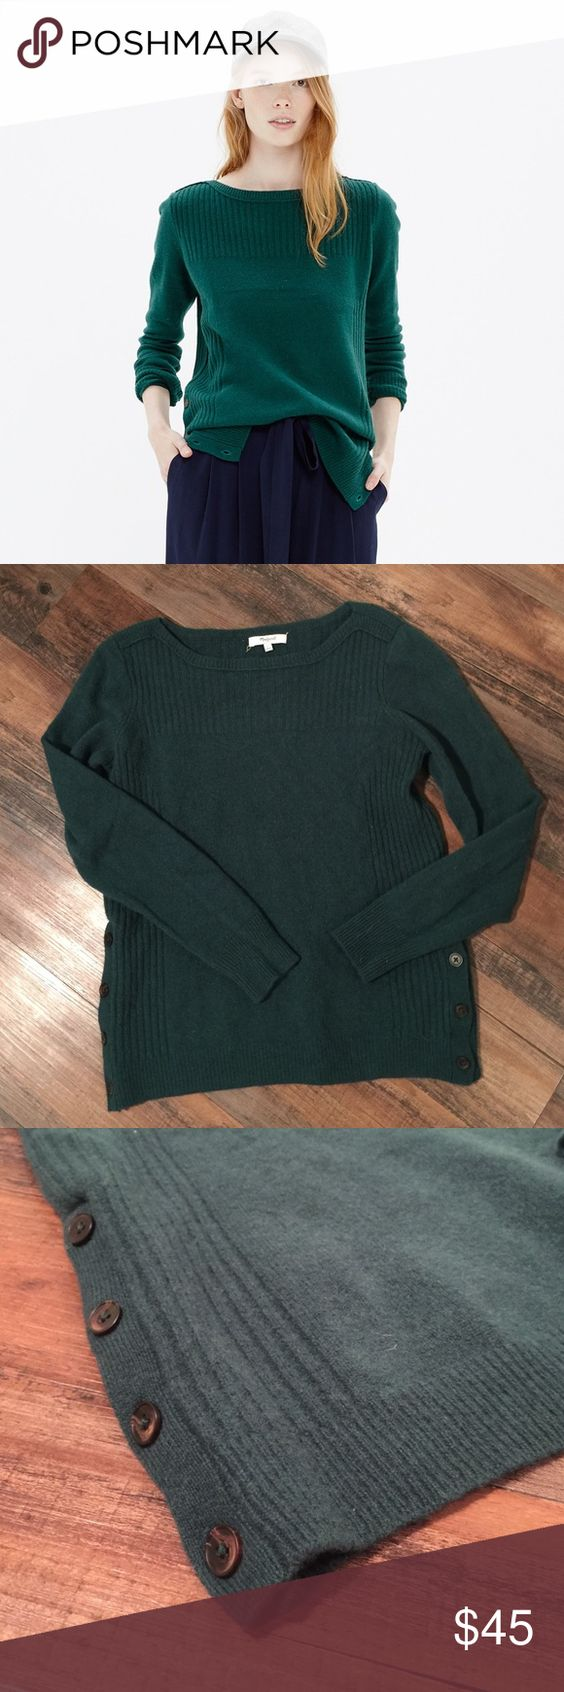 Madewell Pinewood Pullover Sweater Madewell Pinewood Pullover Wool Sweater.  Side button details.  Cozy.  100% wool.  Good condition. Madewell Sweaters Crew & Scoop Necks